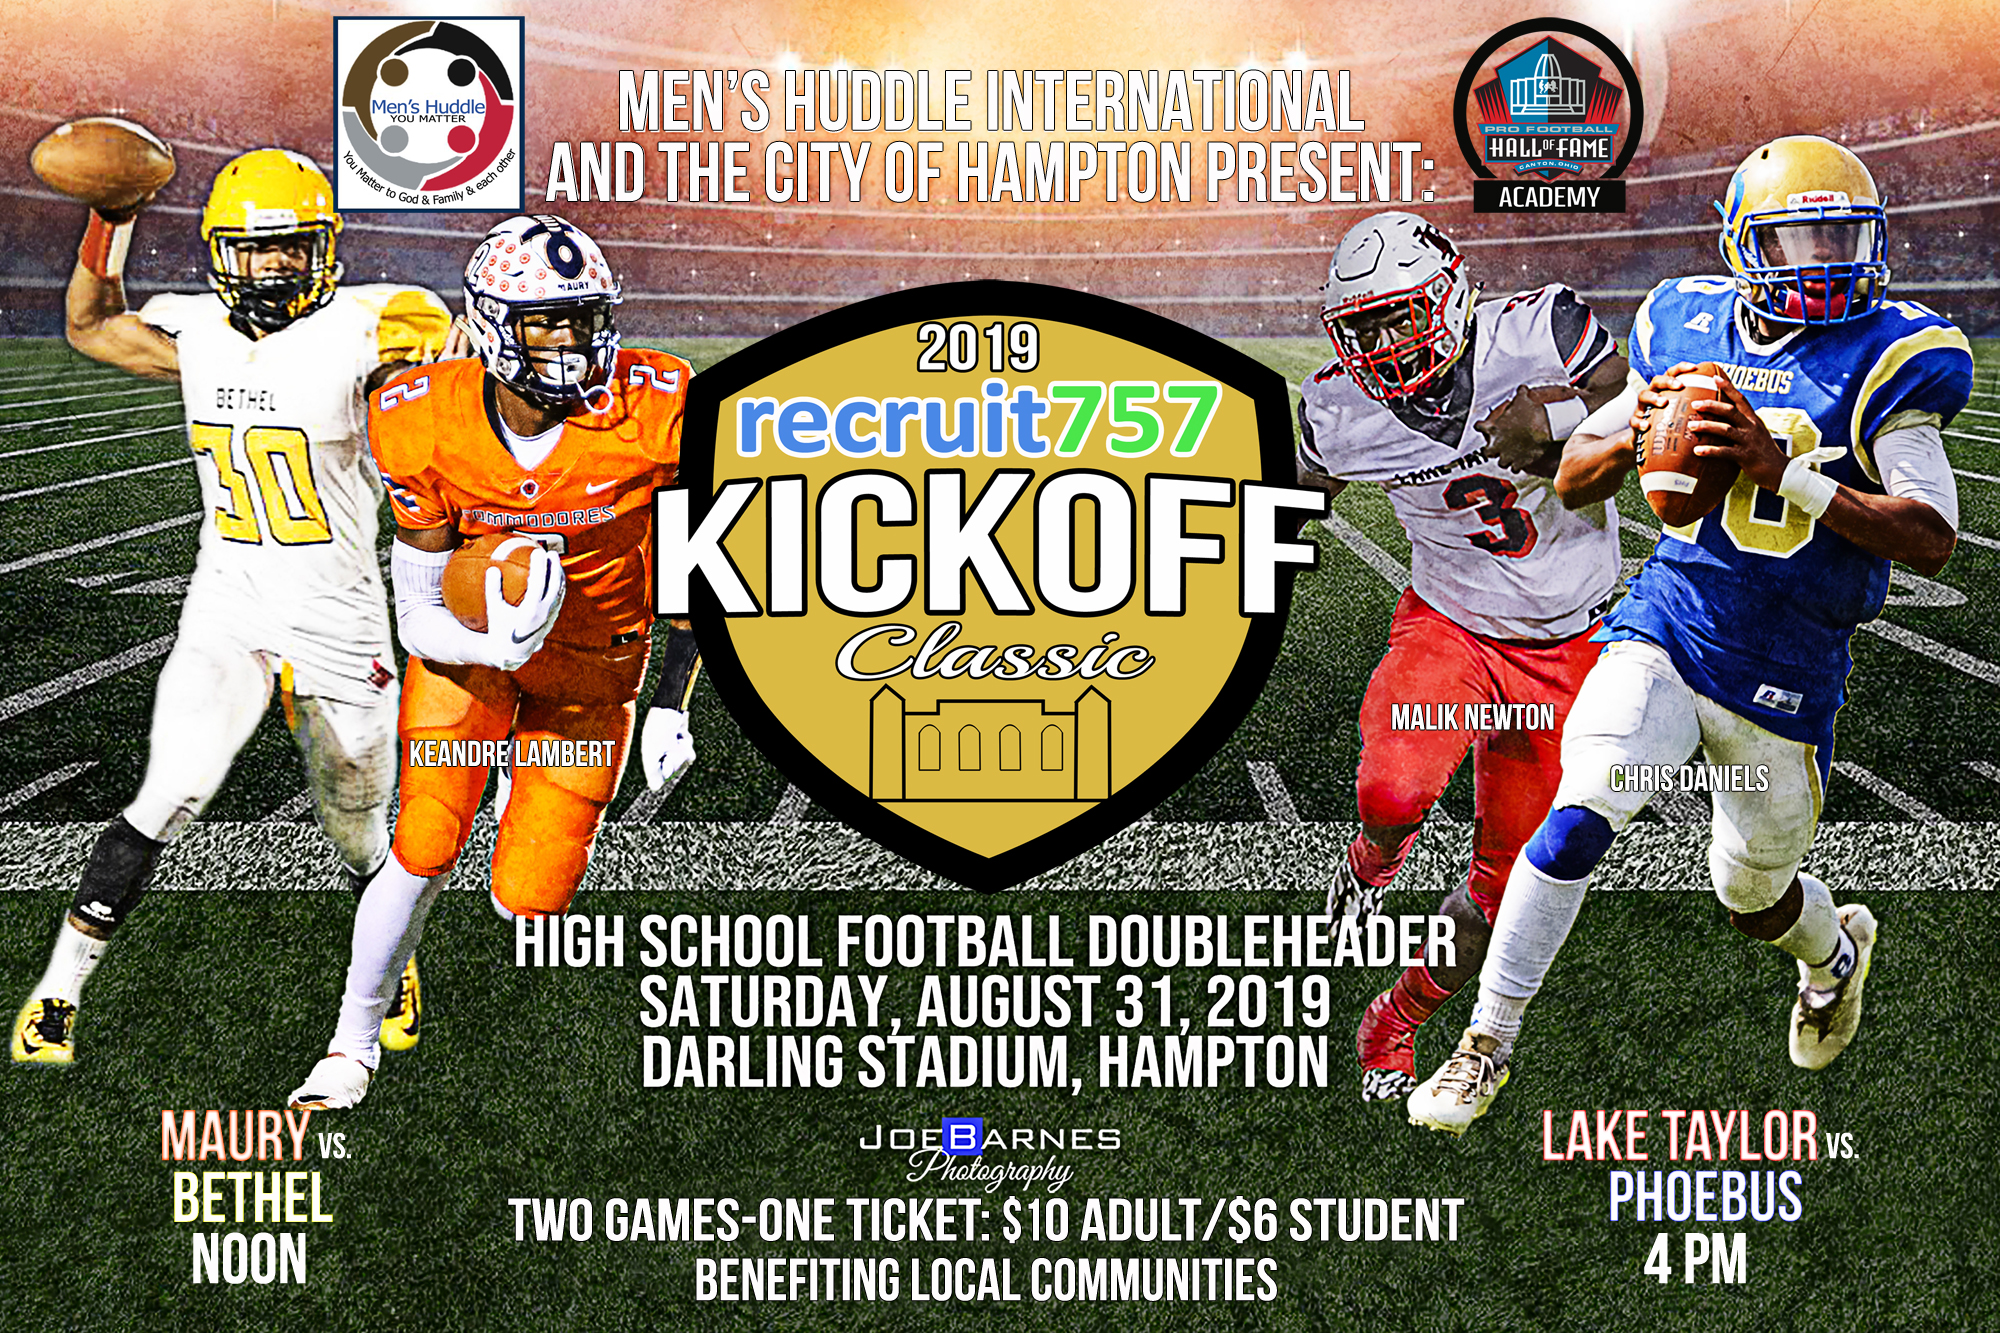 recruit757 Kickoff Classic